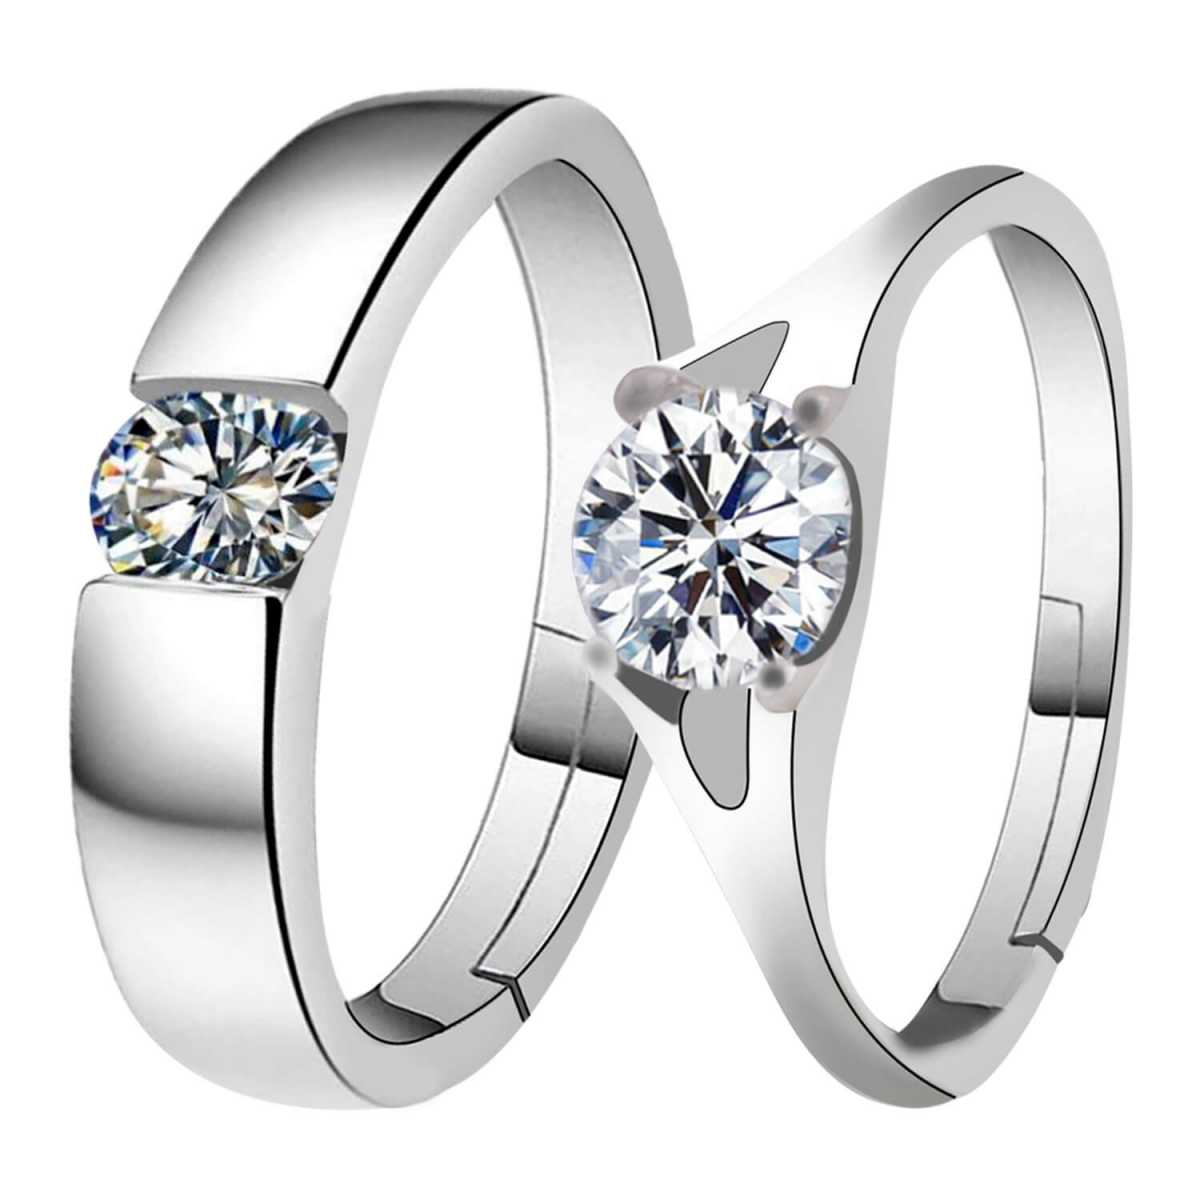 Silverplated Solitaire His and Her Adjustable proposal Diamond couple ring For Men And Women Jewellery